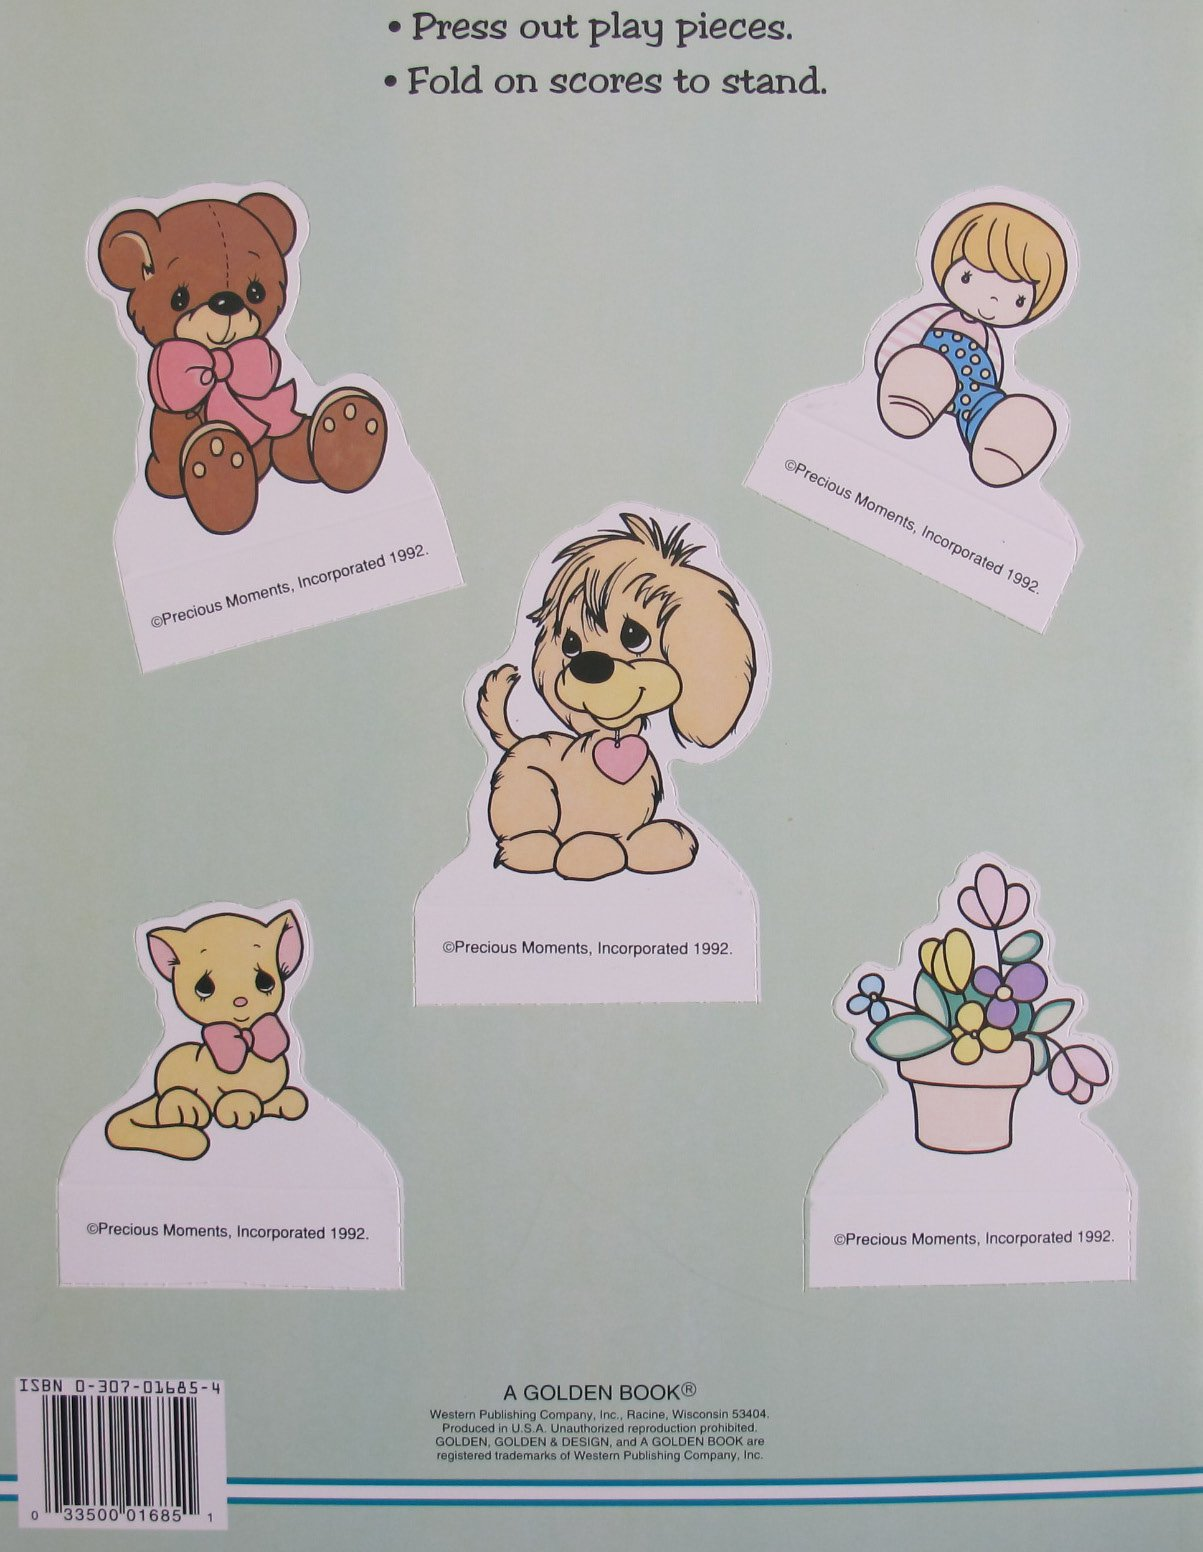 Golden PRECIOUS MOMENTS PAPER DOLL Book UNCUT w 2 Dolls, 5 Play Pieces & MORE! (1992) by Spider-Man (Image #2)